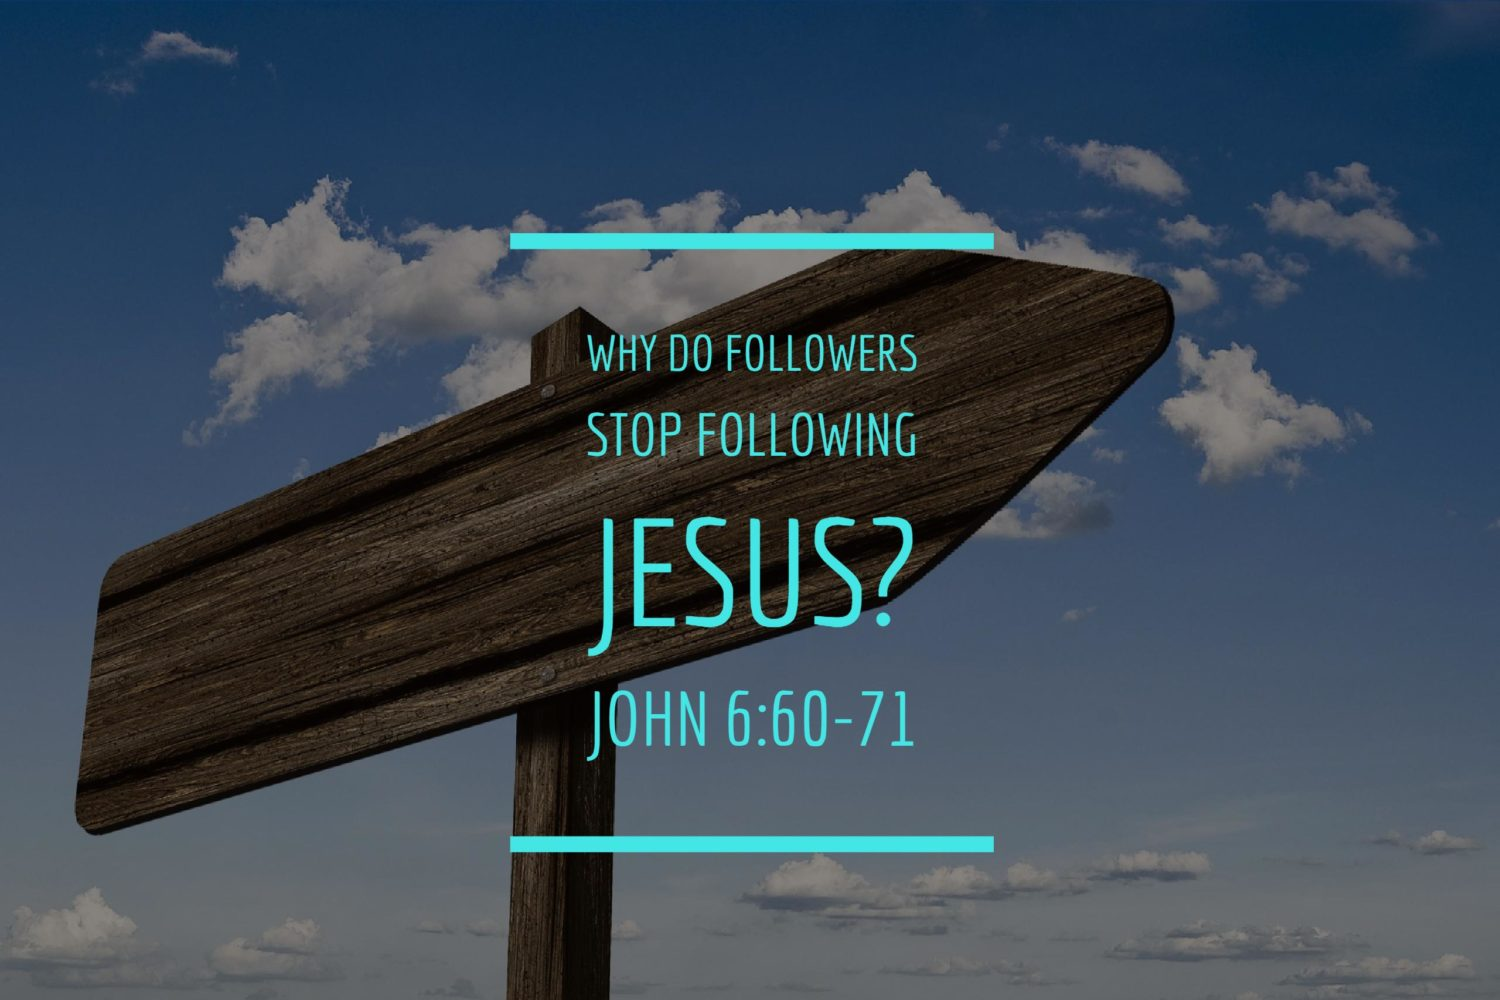 Why do followers stop following Jesus? John 6:60-71